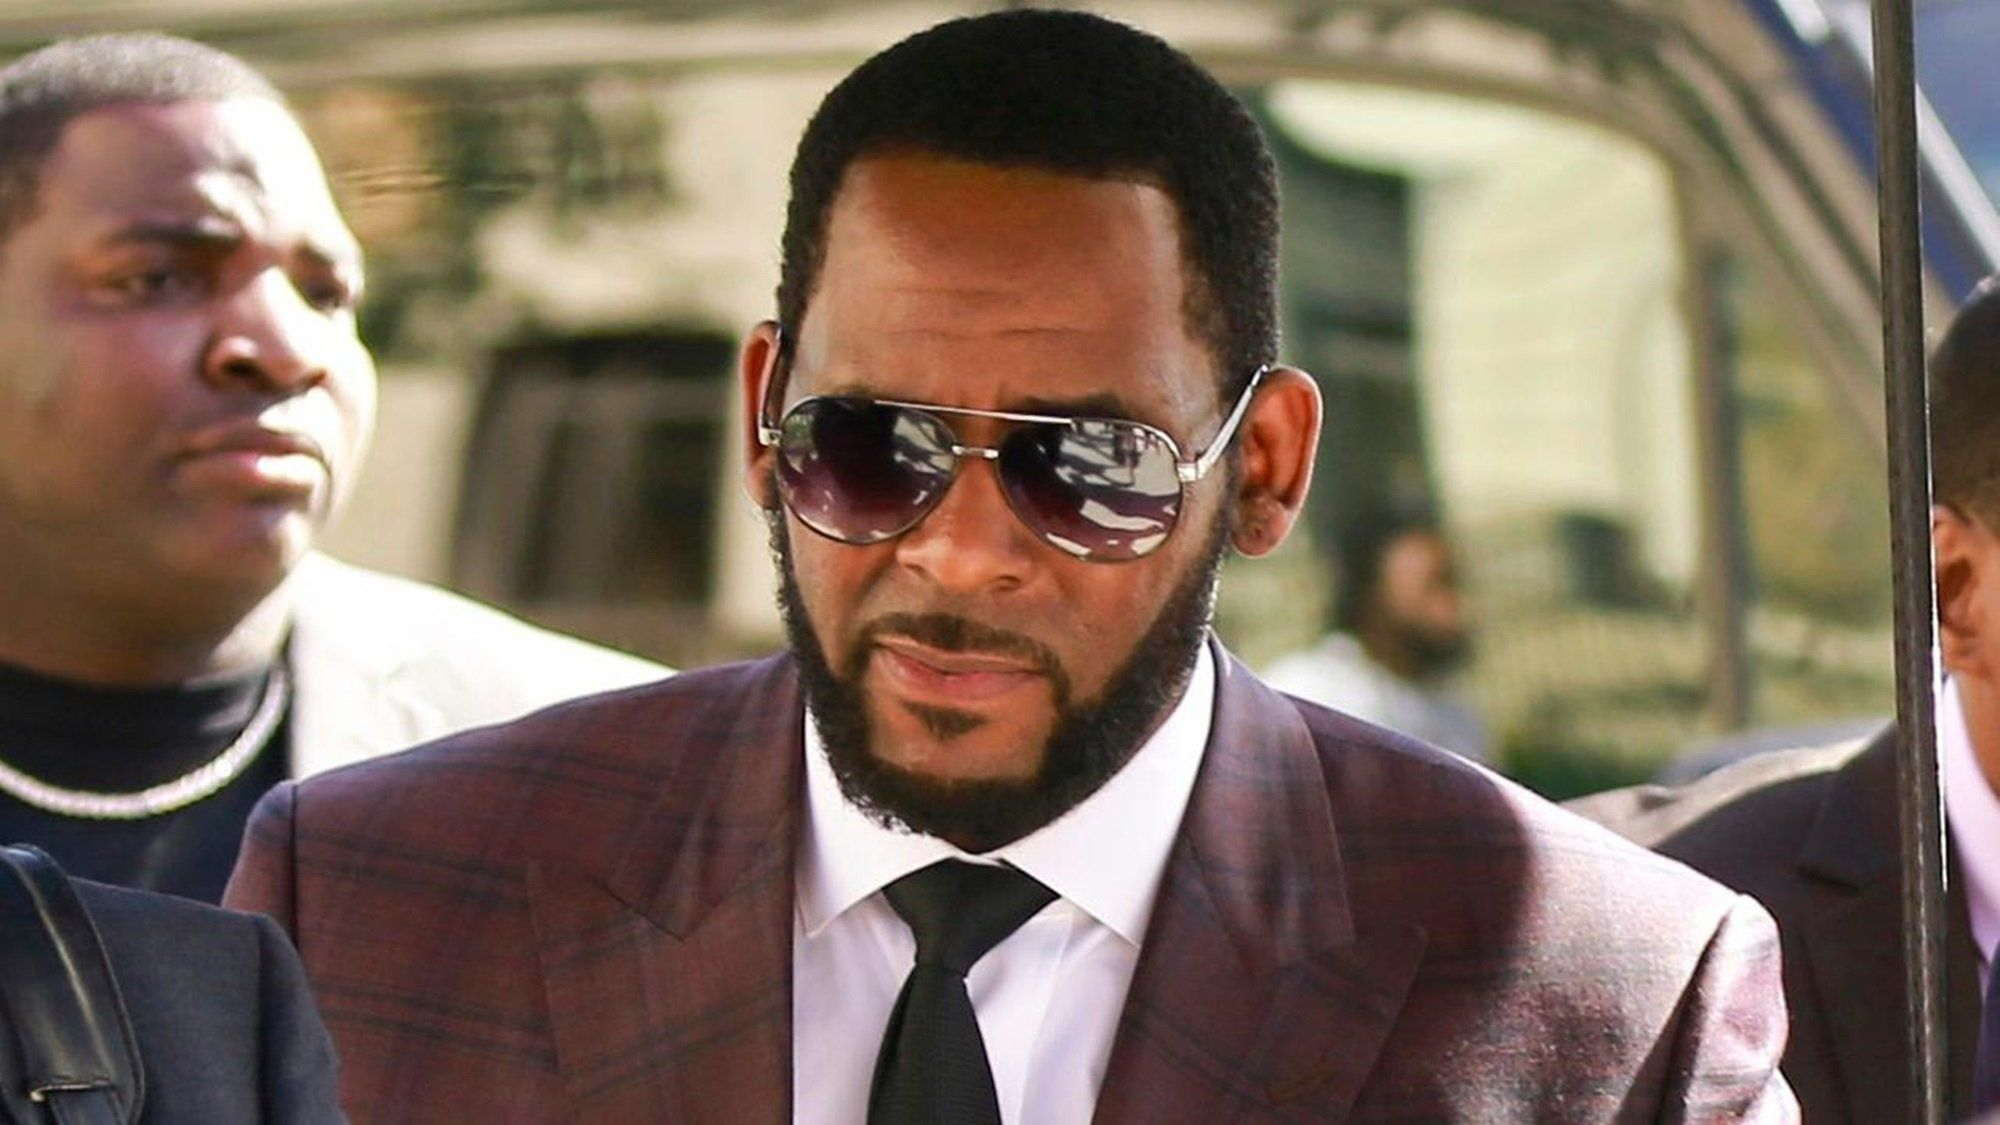 R Kelly Has Found One Defender Mysterious Jail Inmate Writes This Surprising Letter Explaining The Danger The R B Star Is Facing Behind Bars With Images Singer Girlfriends R B